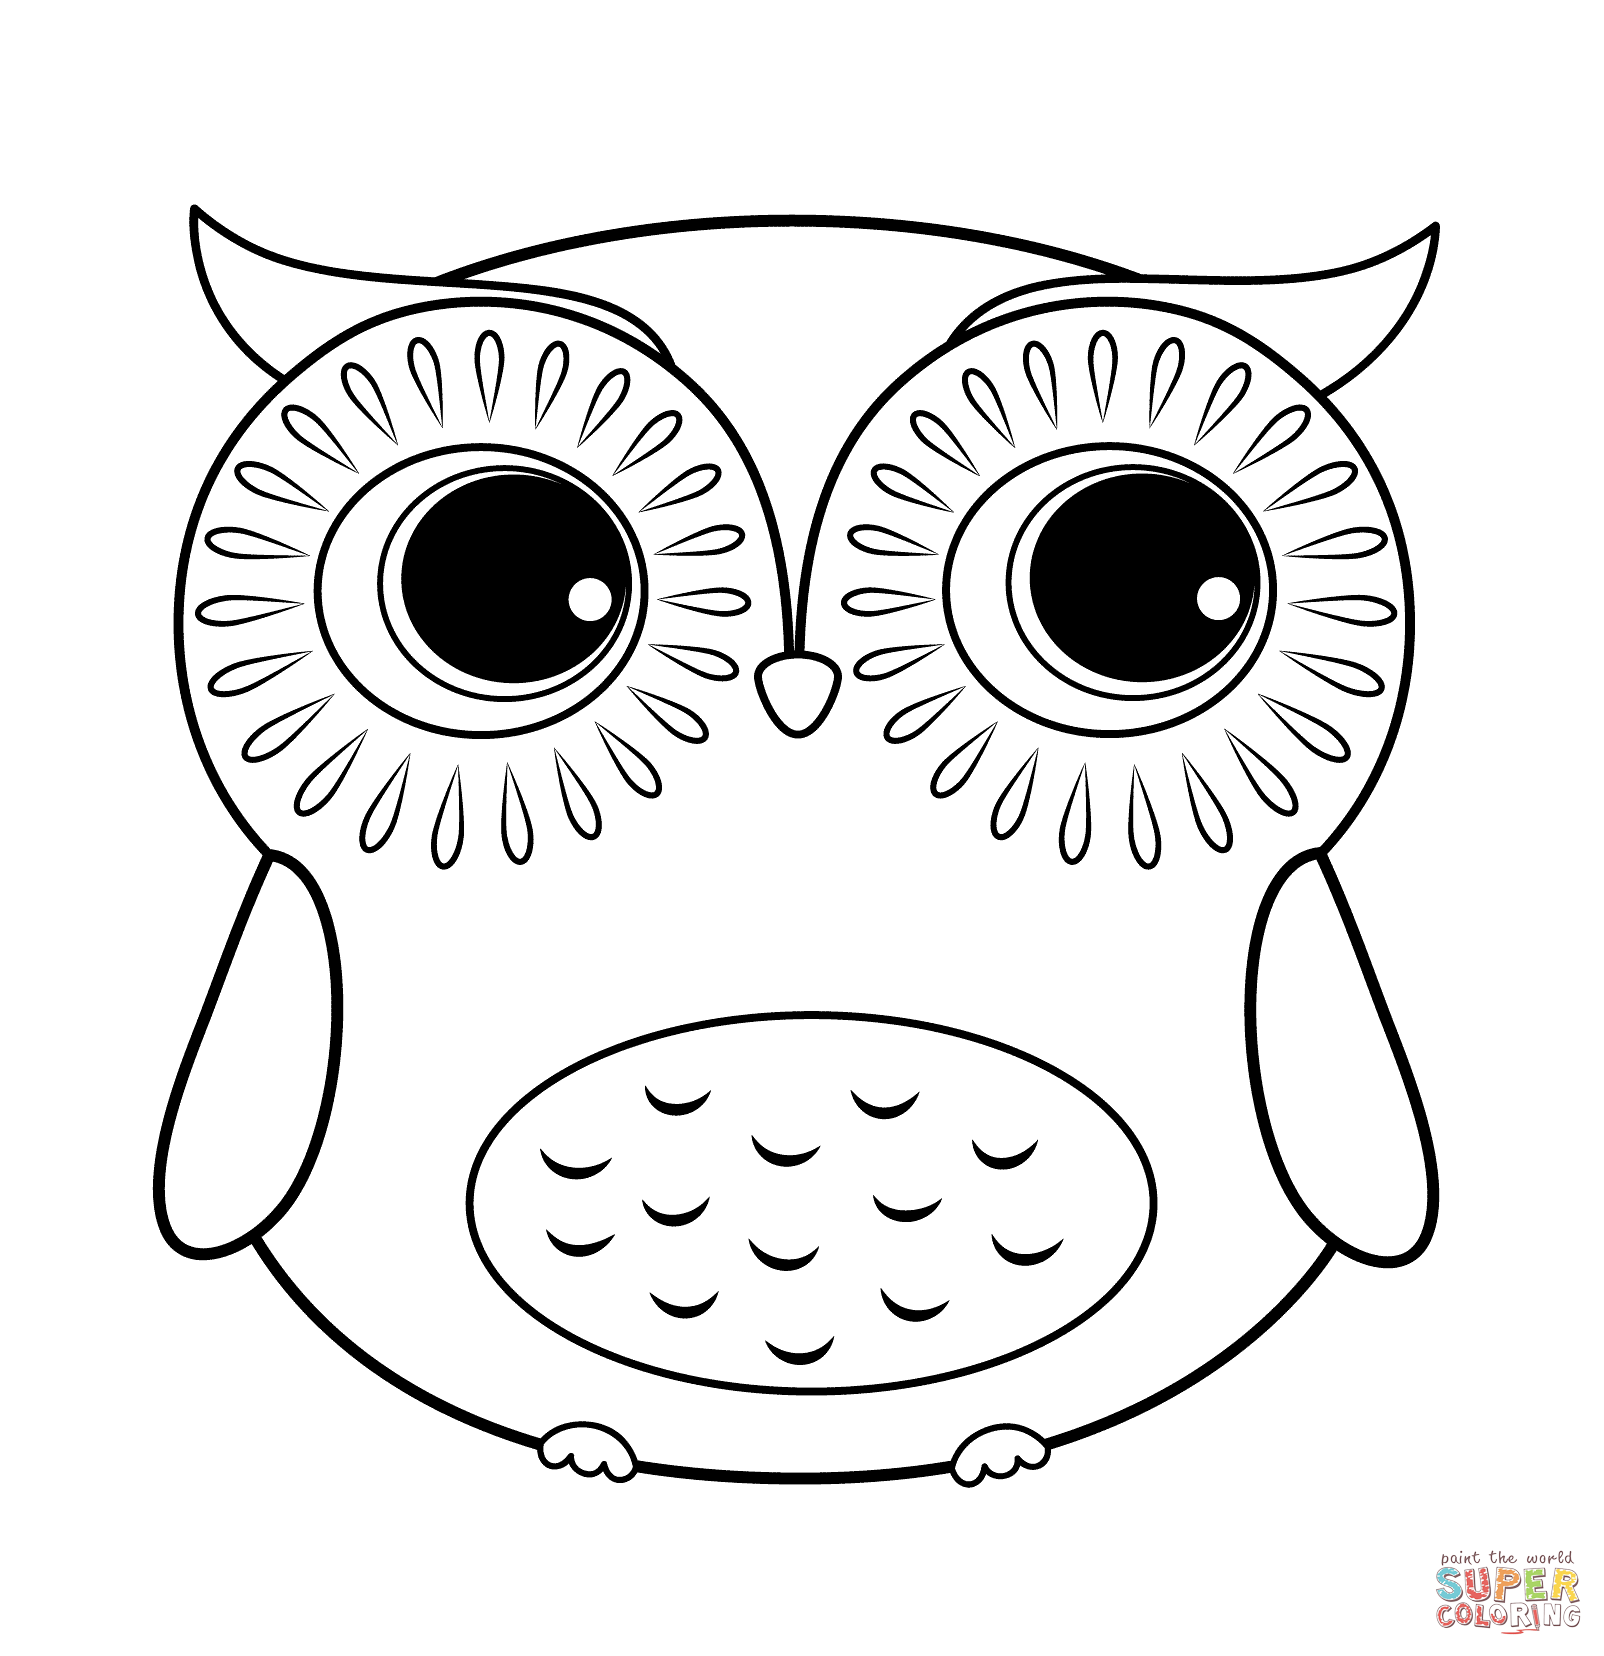 1604x1656 Cartoon Owl Coloring Page Free Printable Coloring Pages